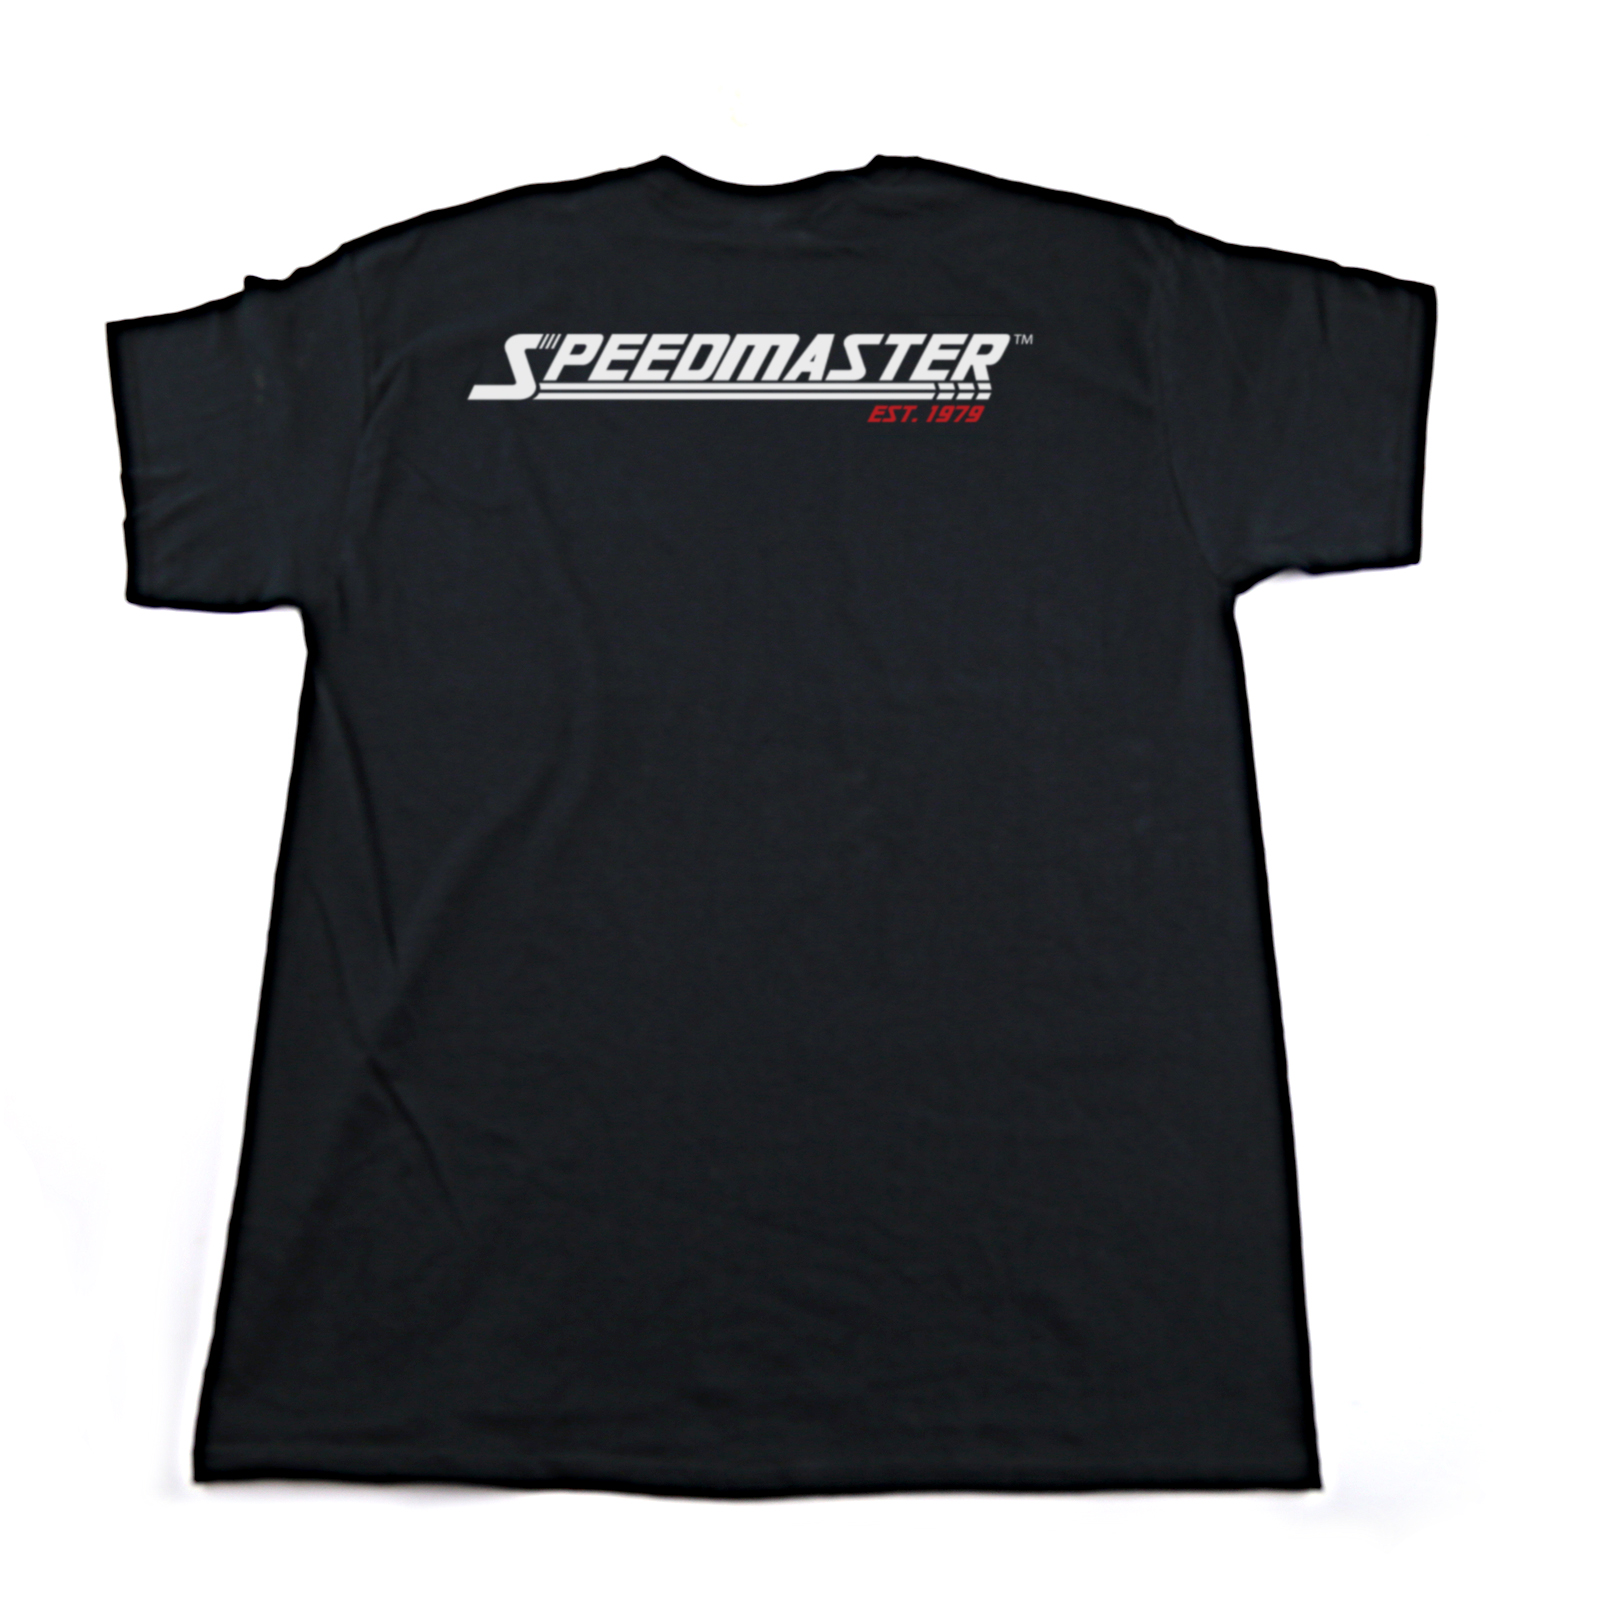 Speedmaster Black T-Shirt - Large L